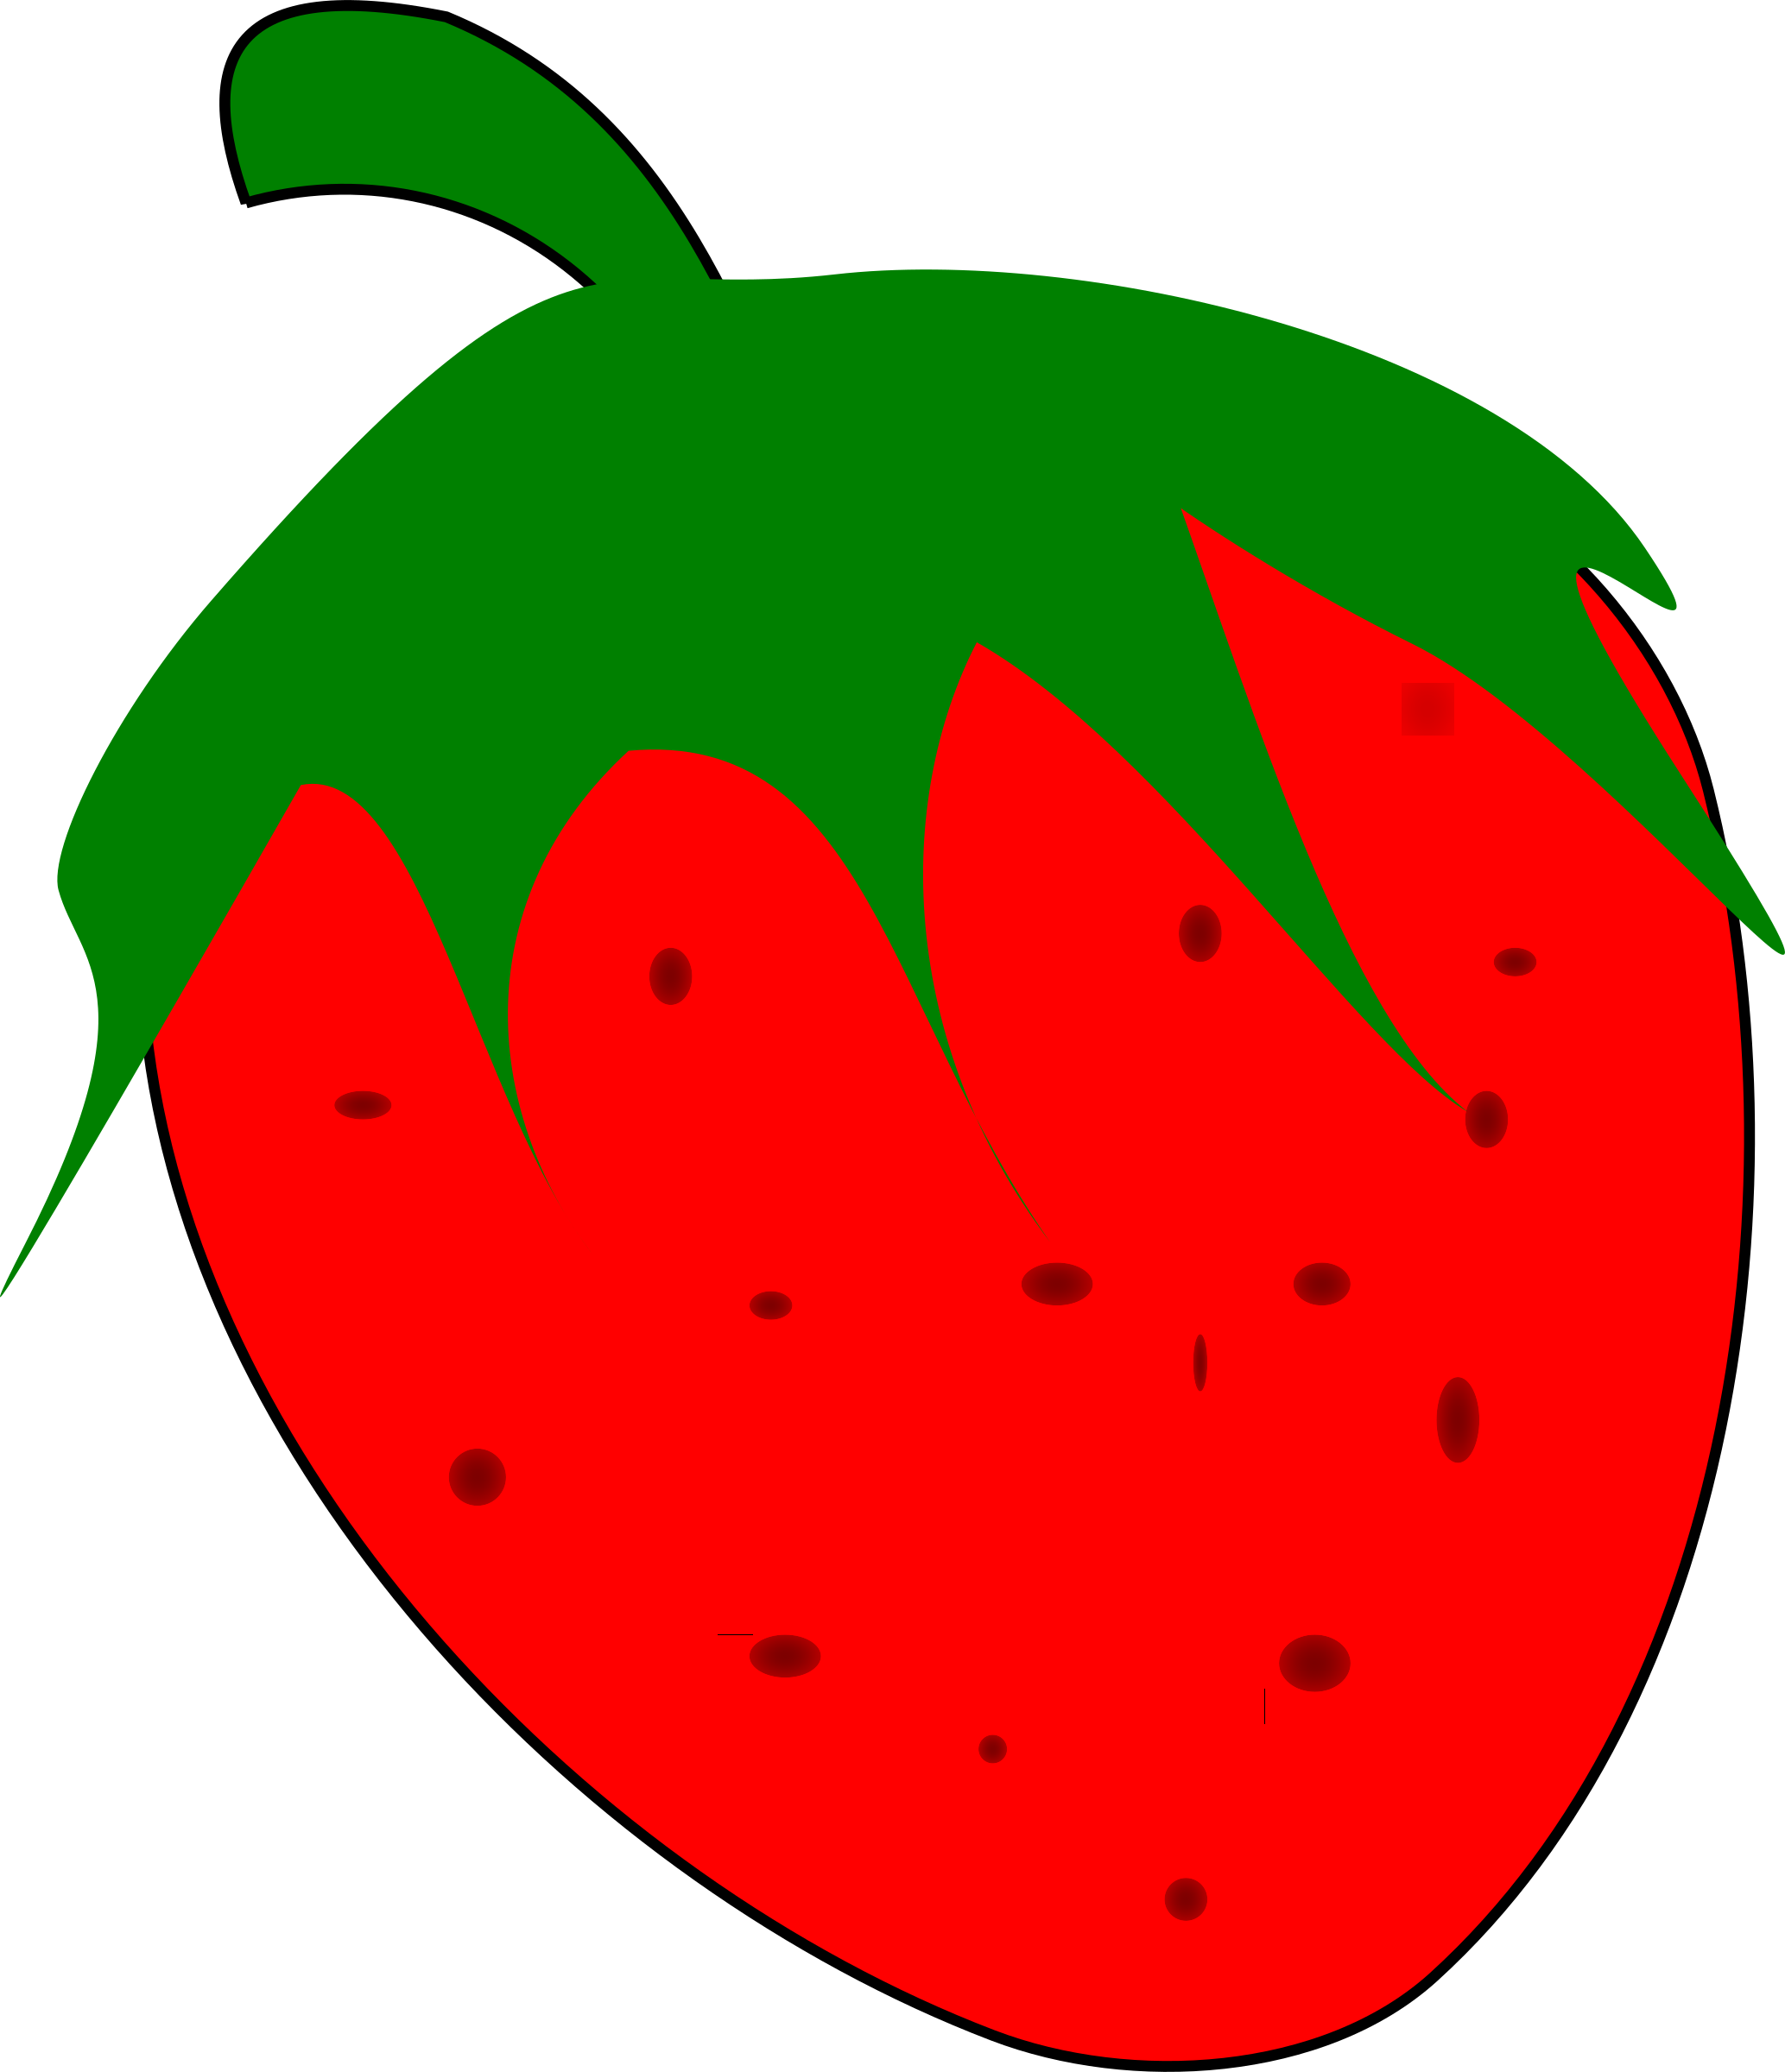 Fresa big image png. Watermelon clipart strawberry